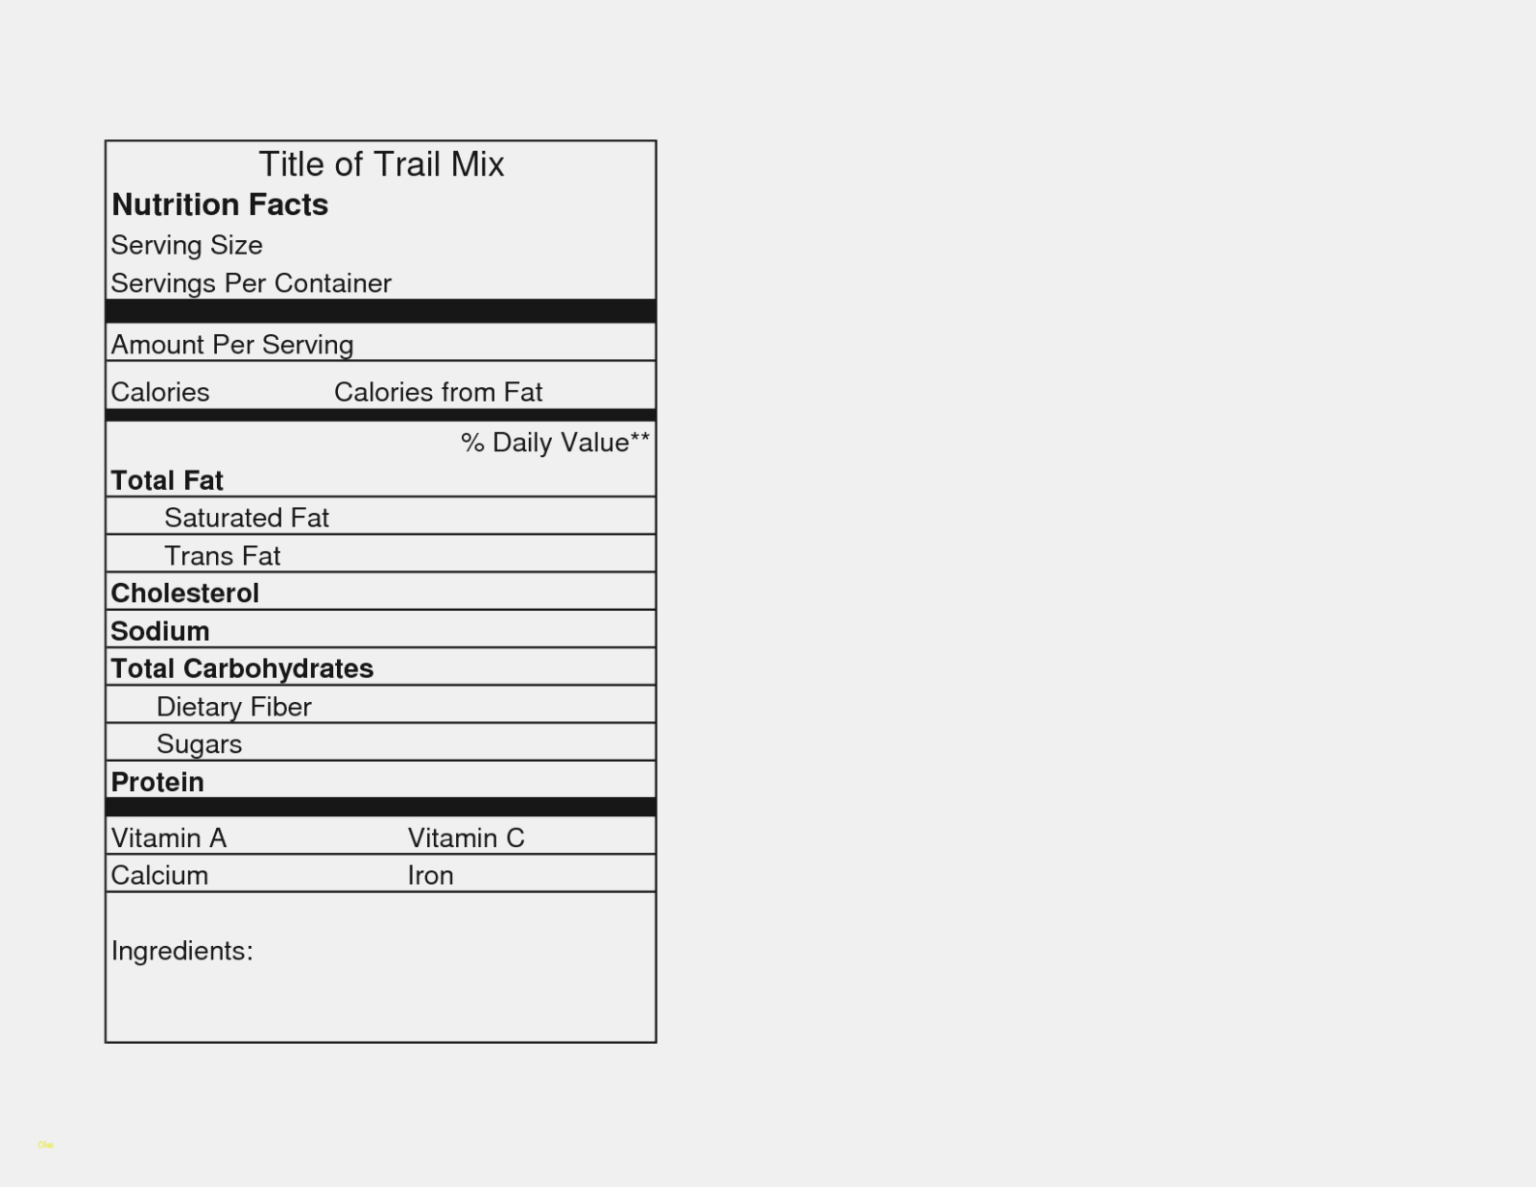 Nutrition News Blank Nutrition Facts Label Template Pertaining To Blank Food Label Template Food Label Template Nutrition Facts Label Nutrition Facts